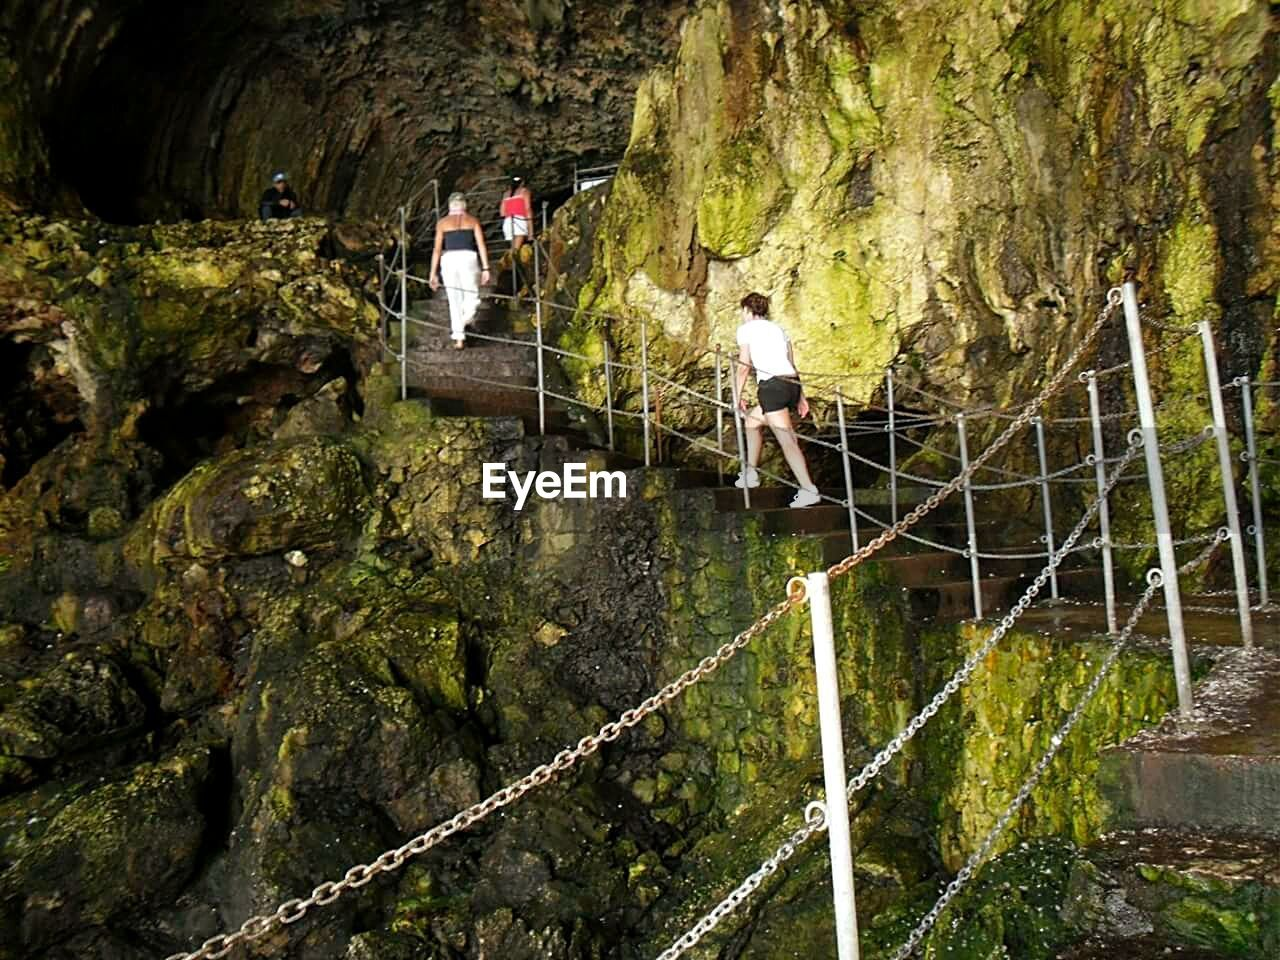 real people, leisure activity, rock - object, rope, full length, lifestyles, men, adventure, bridge - man made structure, nature, climbing, outdoors, day, extreme sports, large group of people, women, footbridge, beauty in nature, people, adult